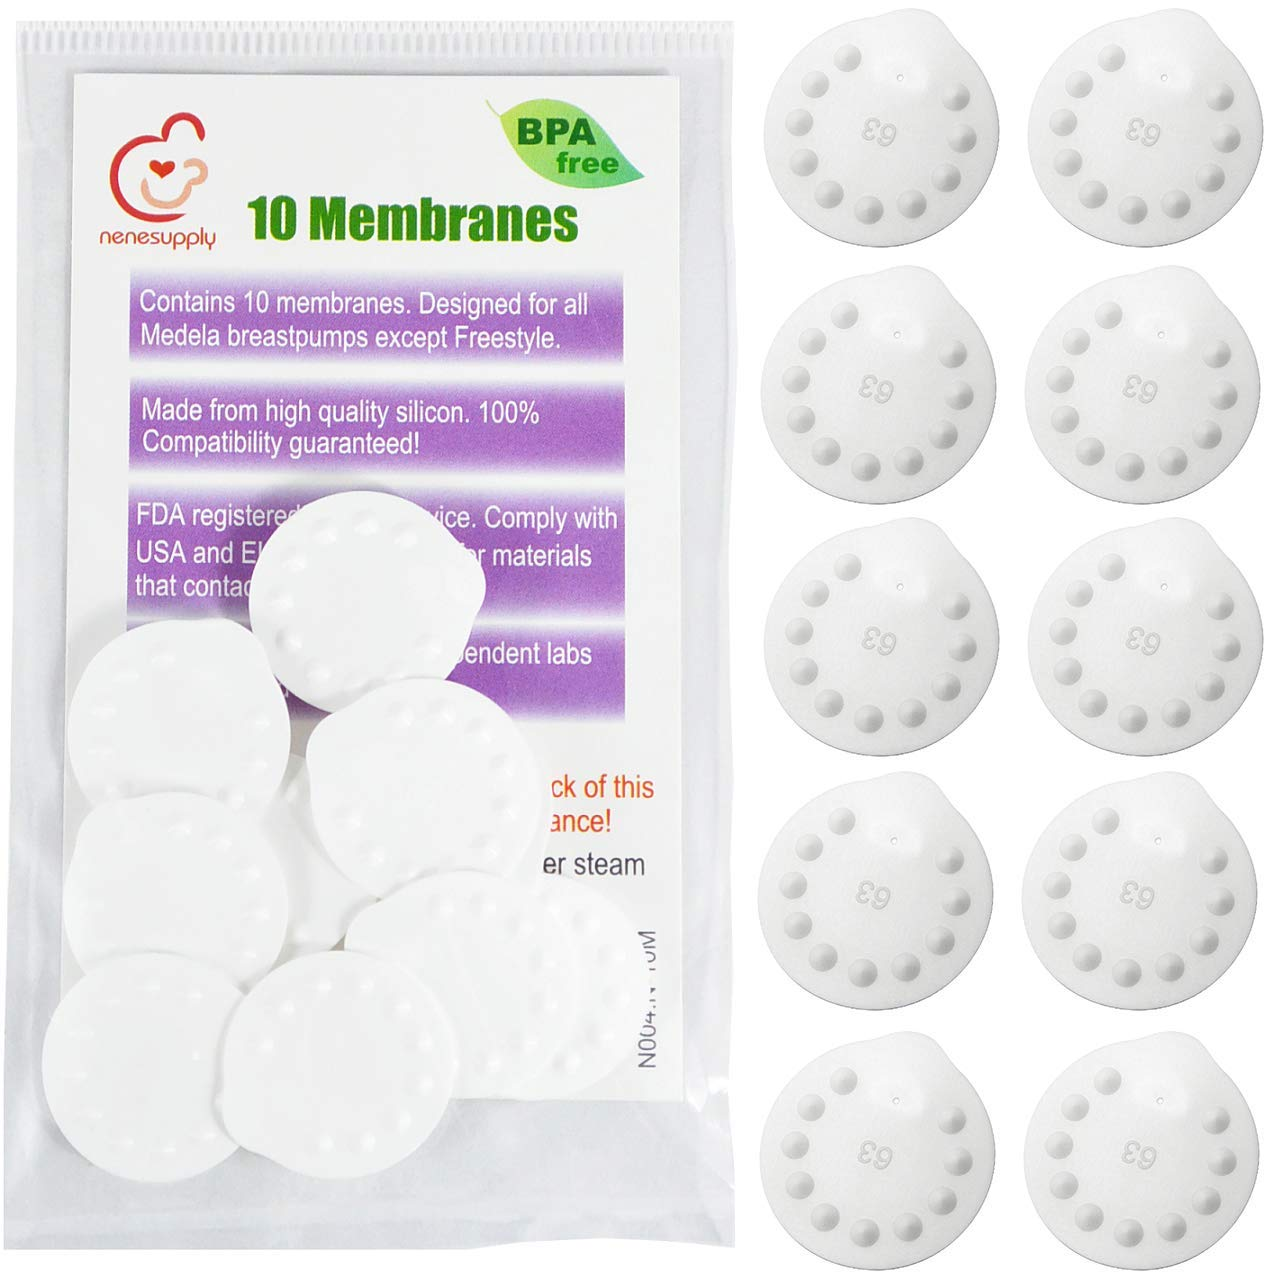 Nenesupply10 Count Membranes Compatible with Medela Pump Parts Use with Nenesupply Valve and Medela Valve Replace Medela Membrane Compatible with Pump in Style Swing Symphony Harmony Breast Pump